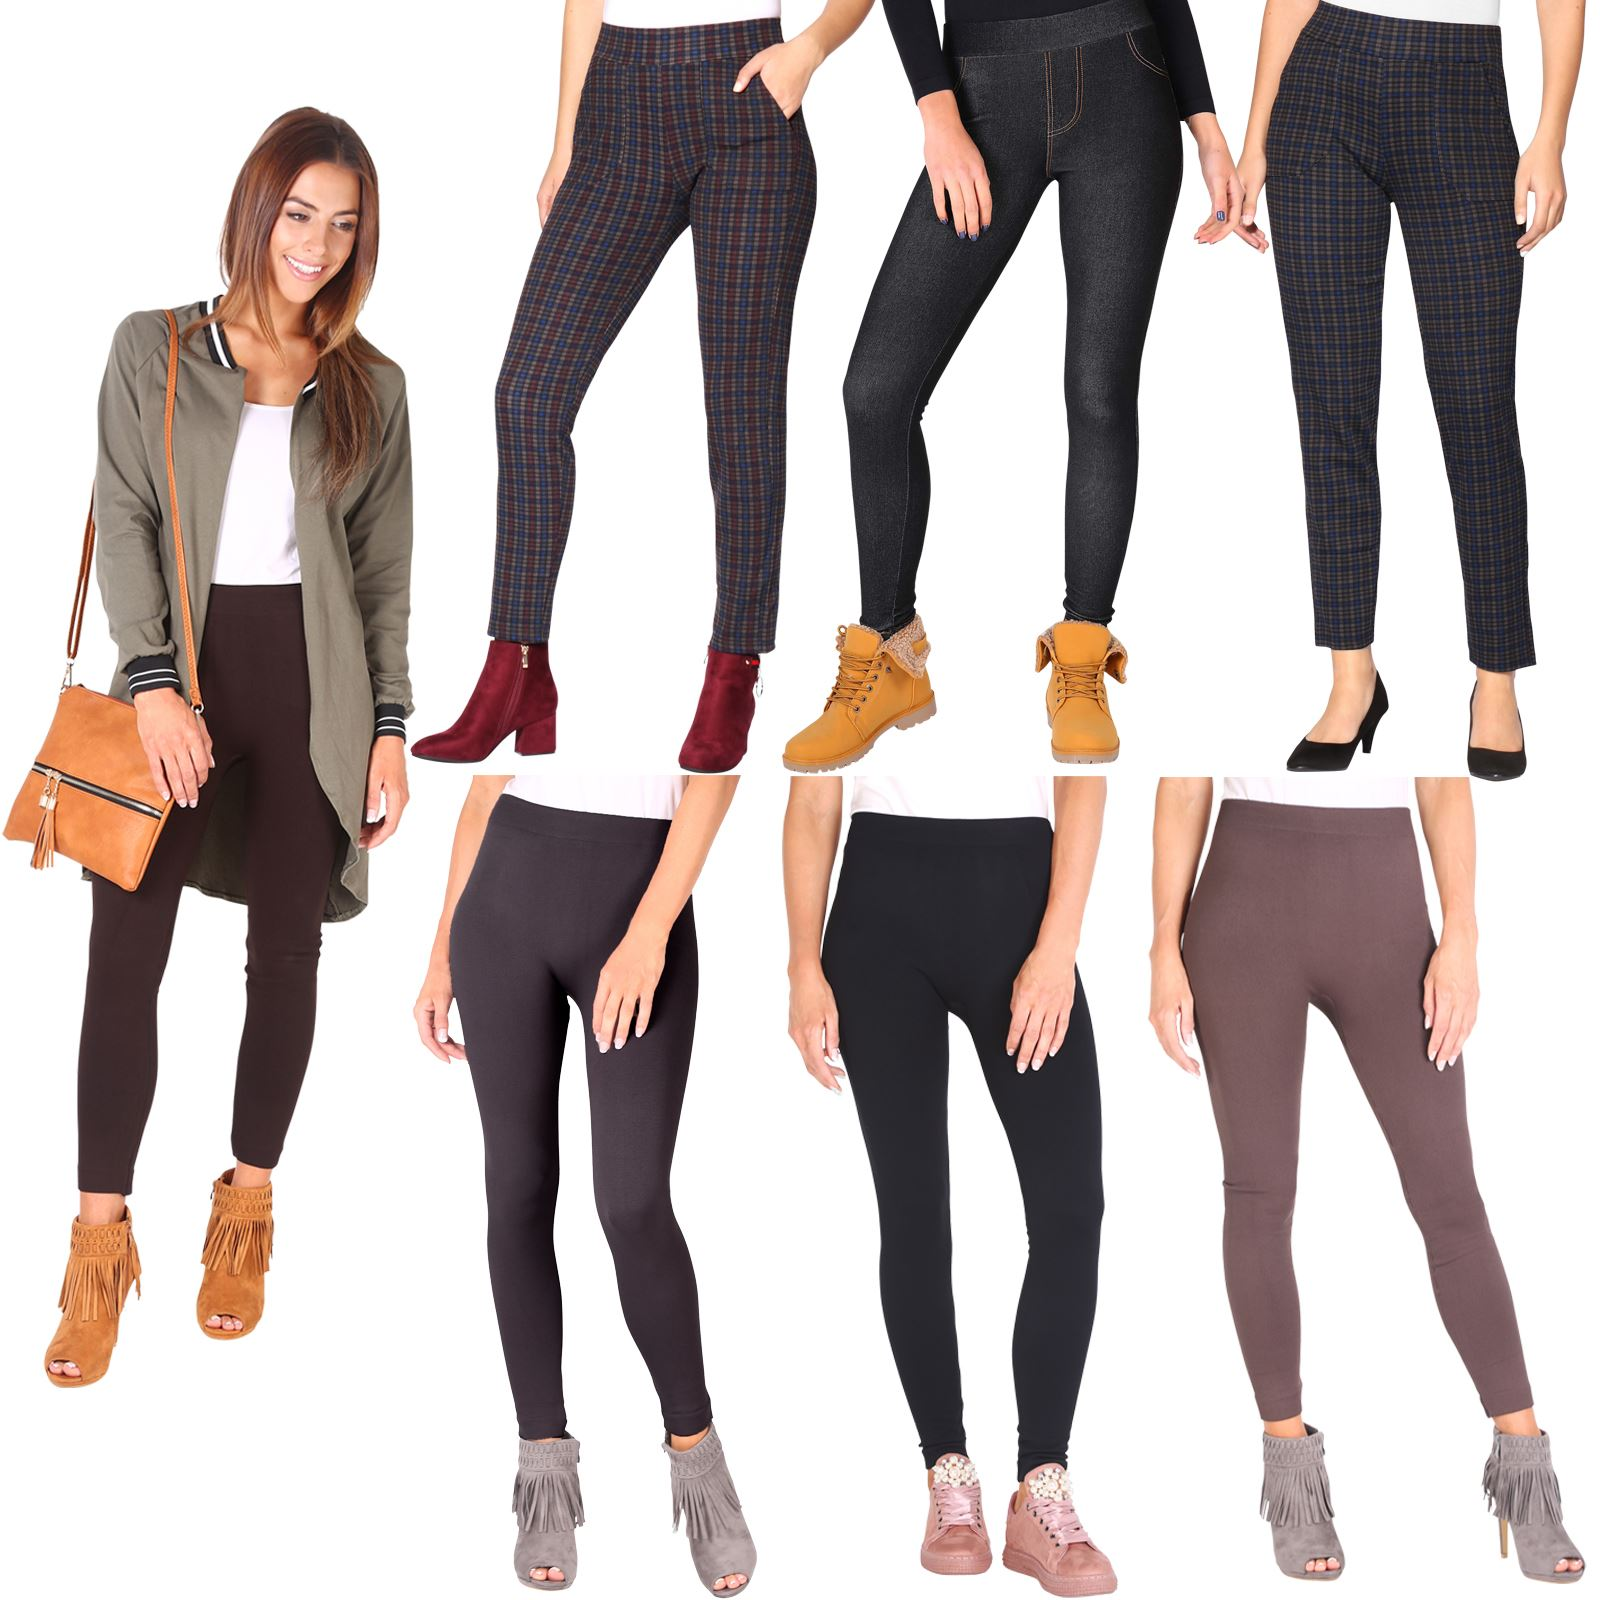 WOMENS LADIES STRETCH LINED BUTTON DETAIL TRENDY JEANS LOOK LEGGINGS JEGGINGS